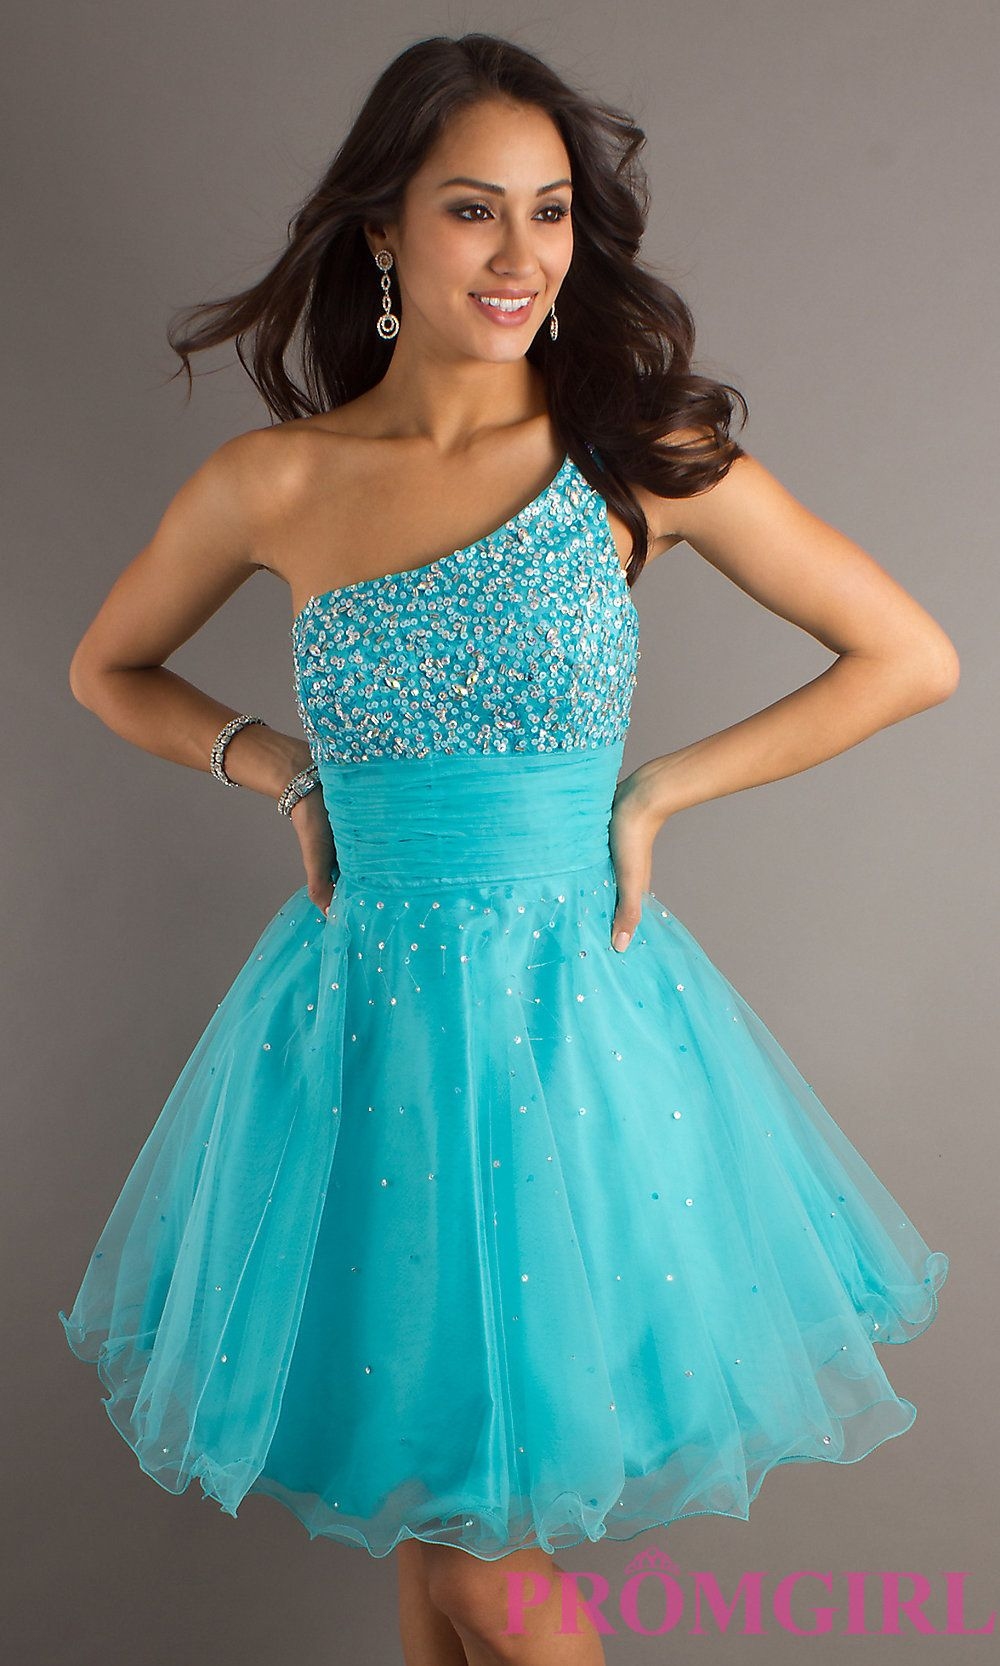 This is my dream dress for prom... Blue for a Smurf... lol | Prom ...